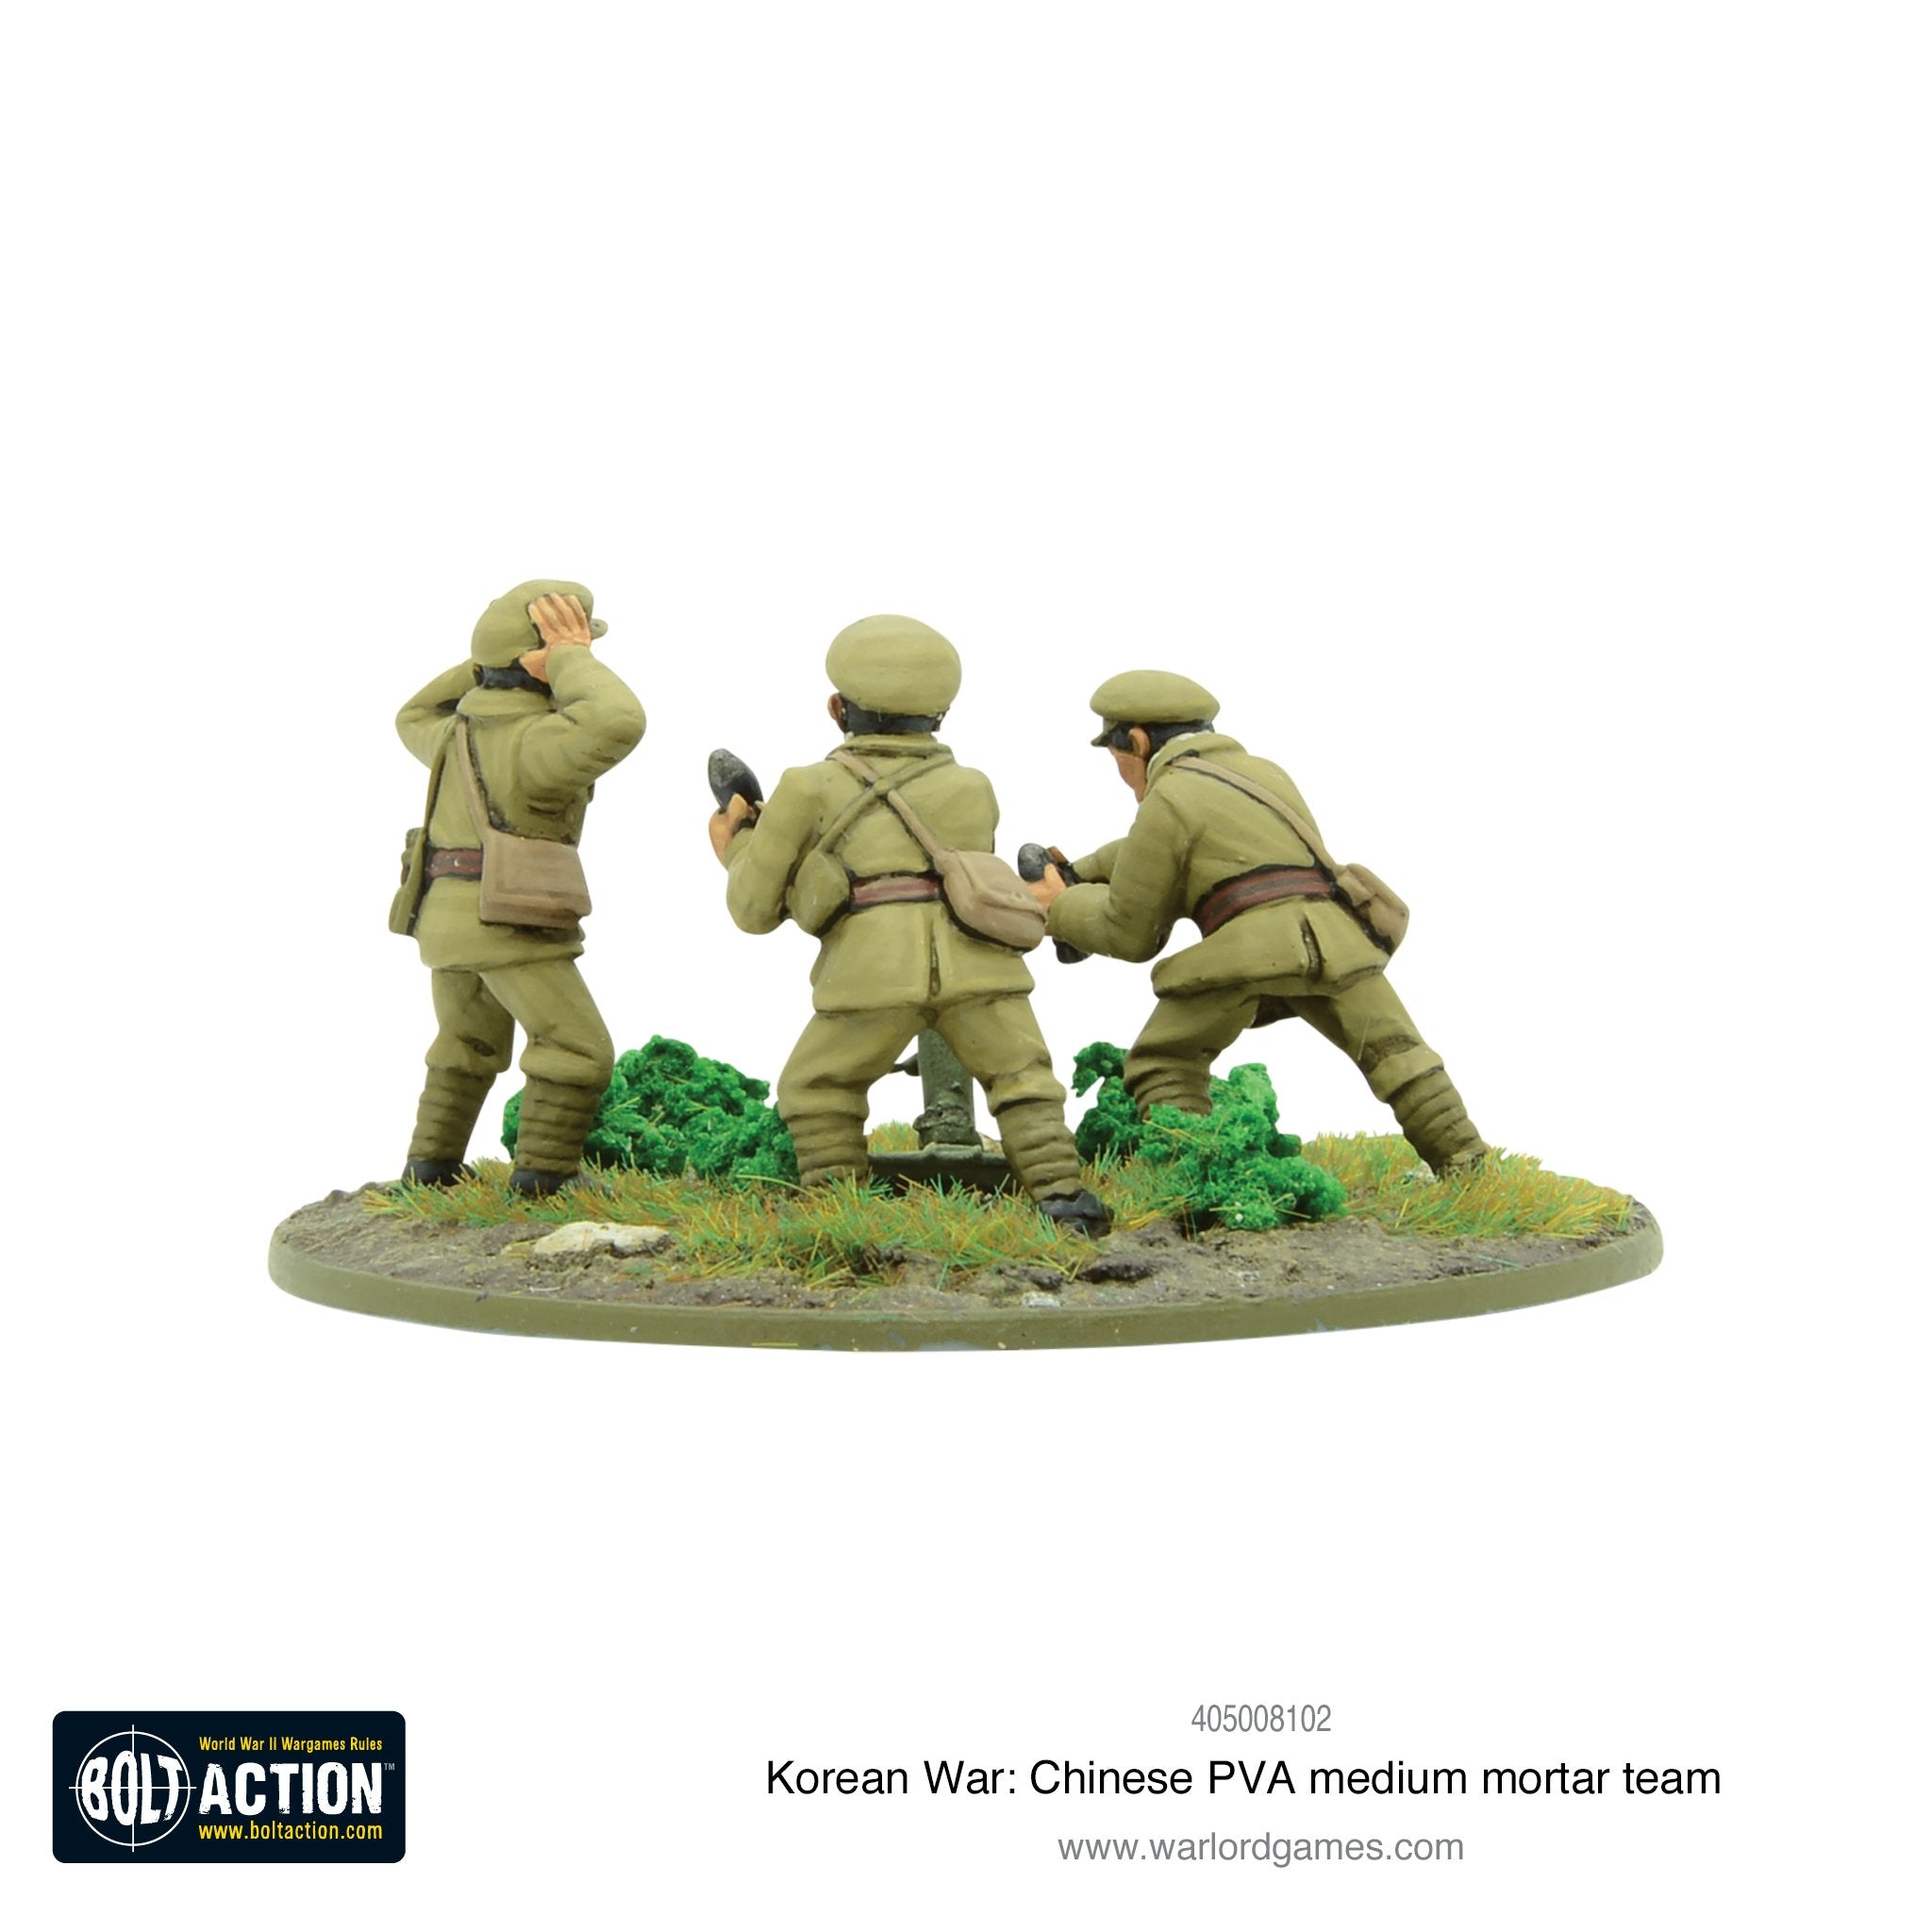 Korean War: Chinese PVA medium mortar team